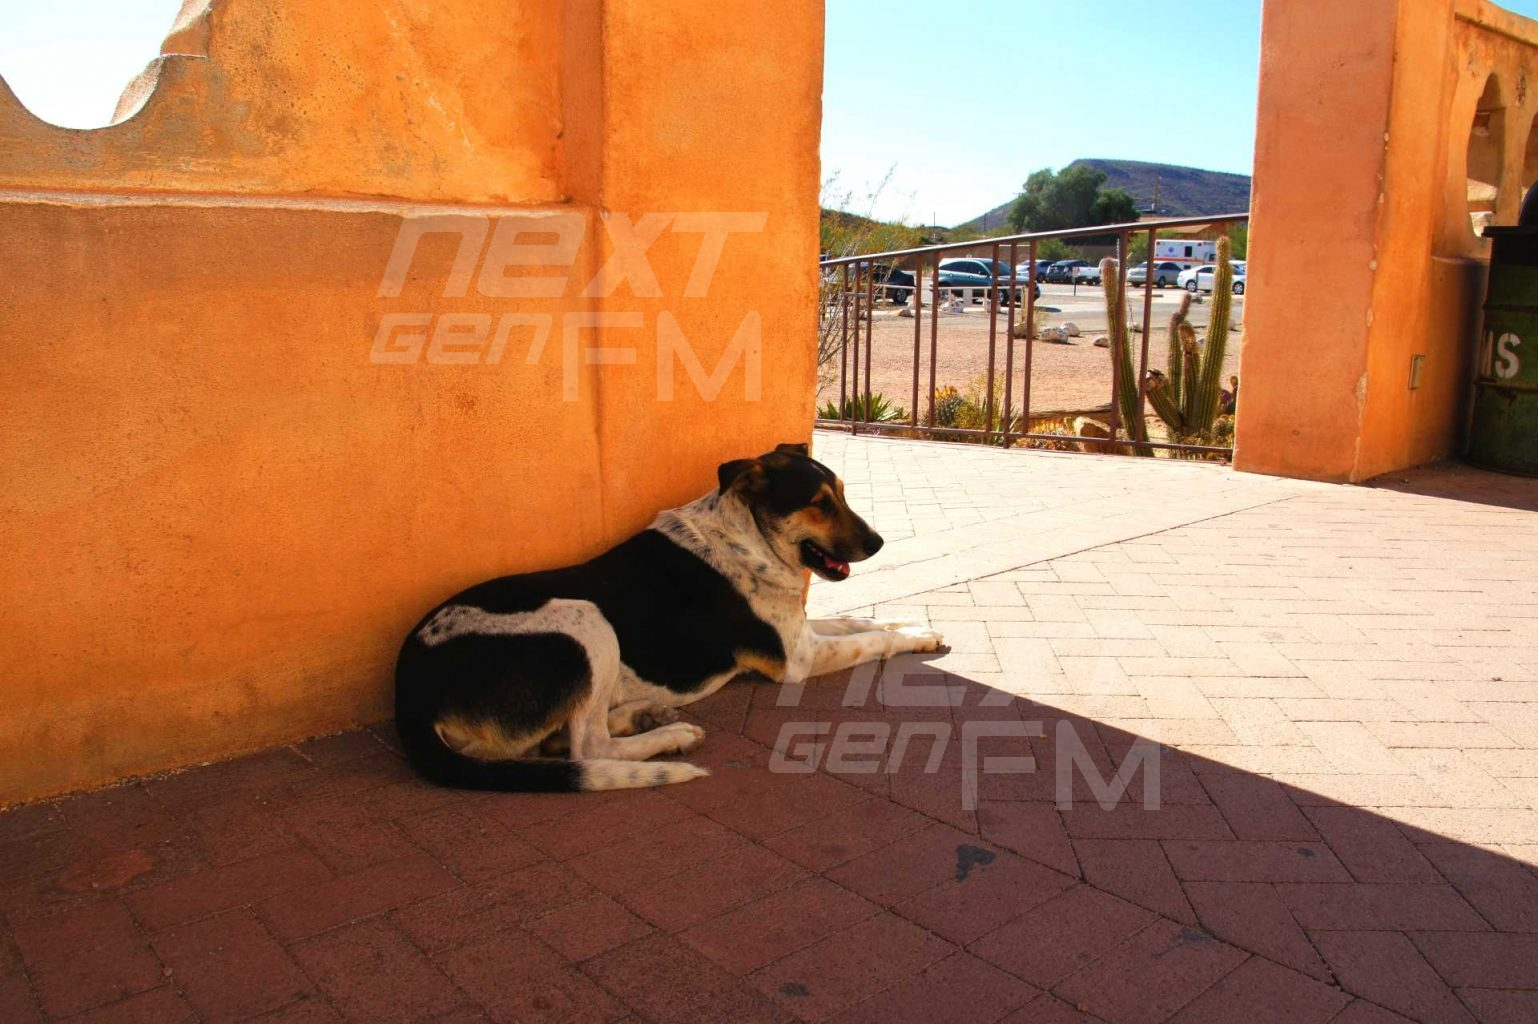 A dog takes a break from the hot Arizona sun in the shade of the church.